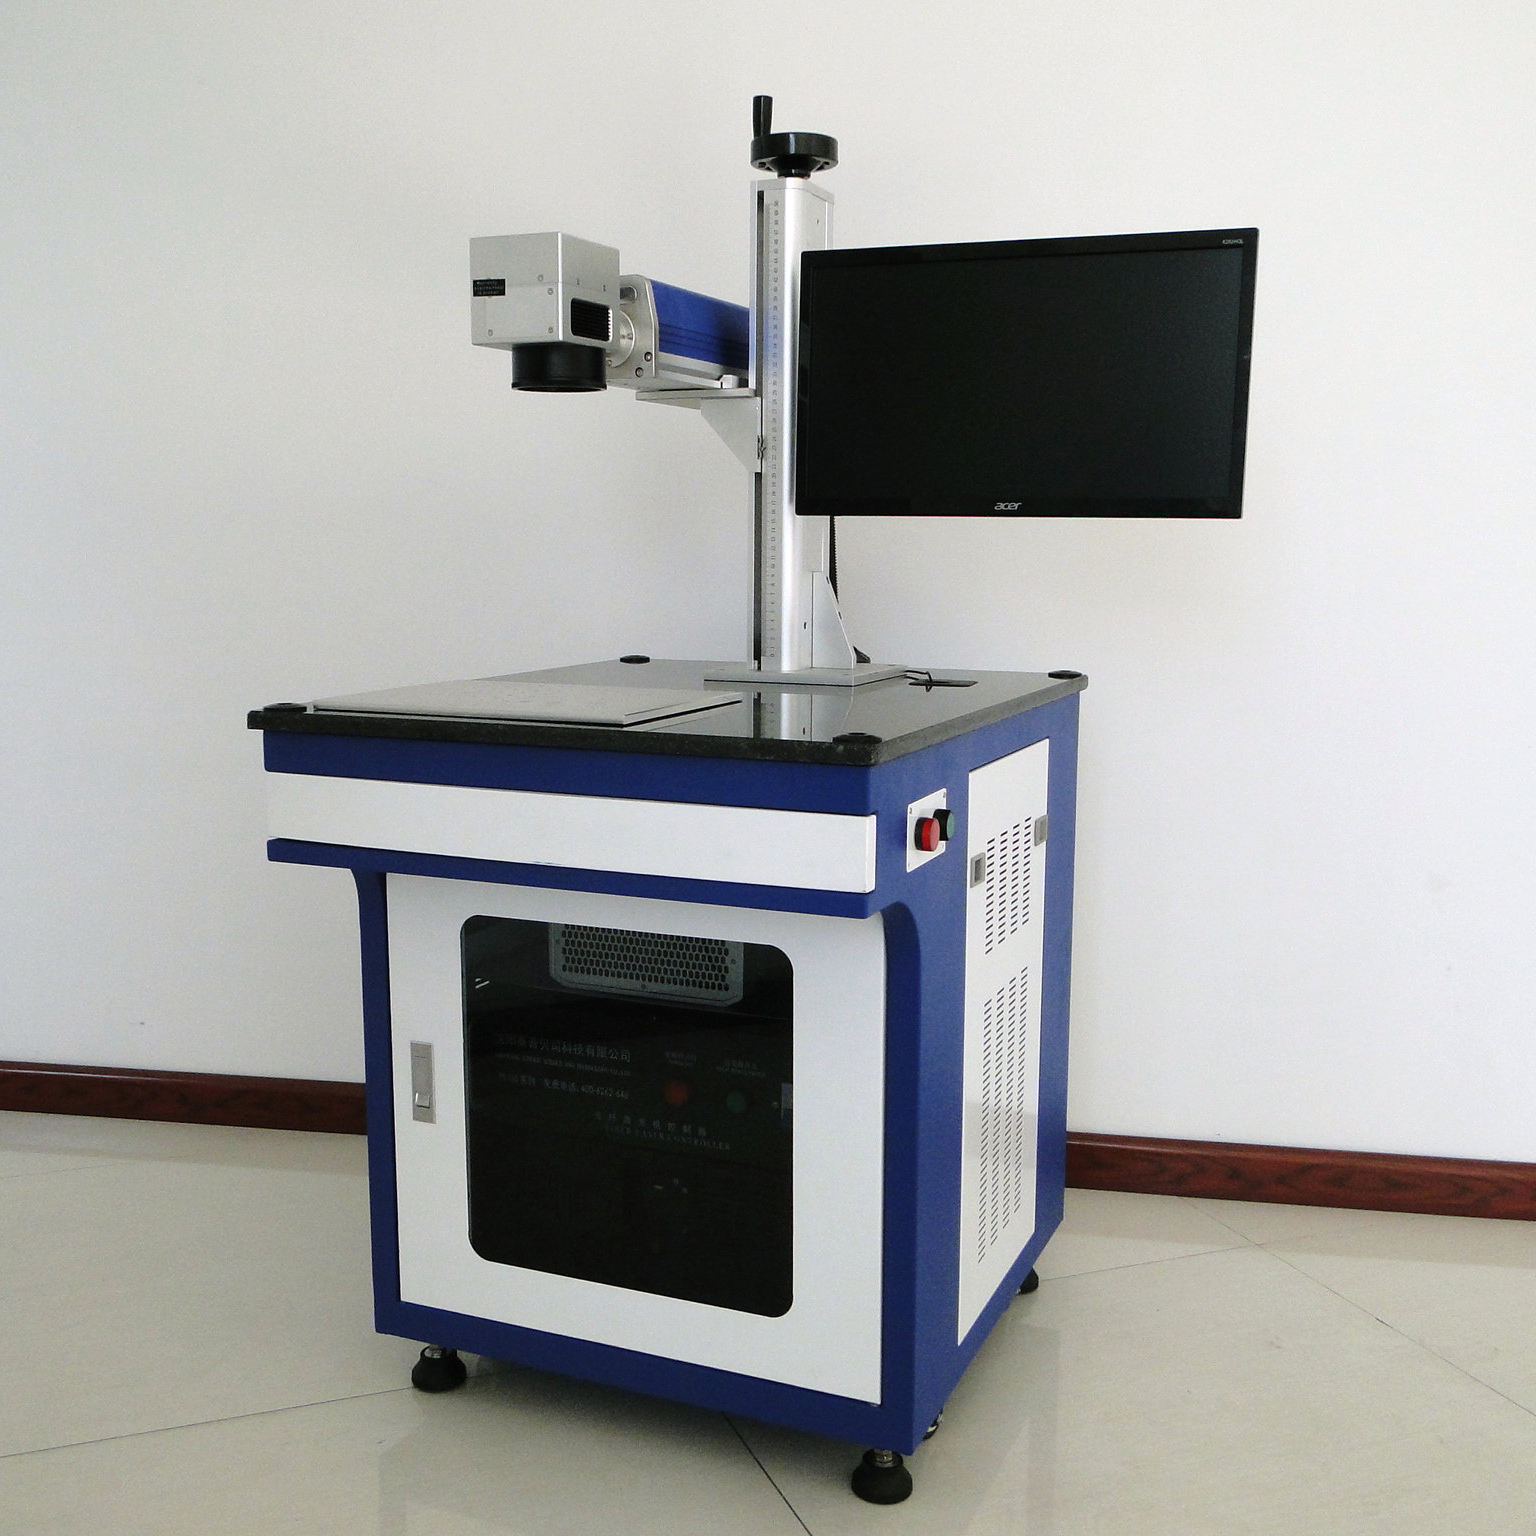 Faith Best price Fiber/UV/co2 flying laser marking machine from China Industrial Laser printing machine